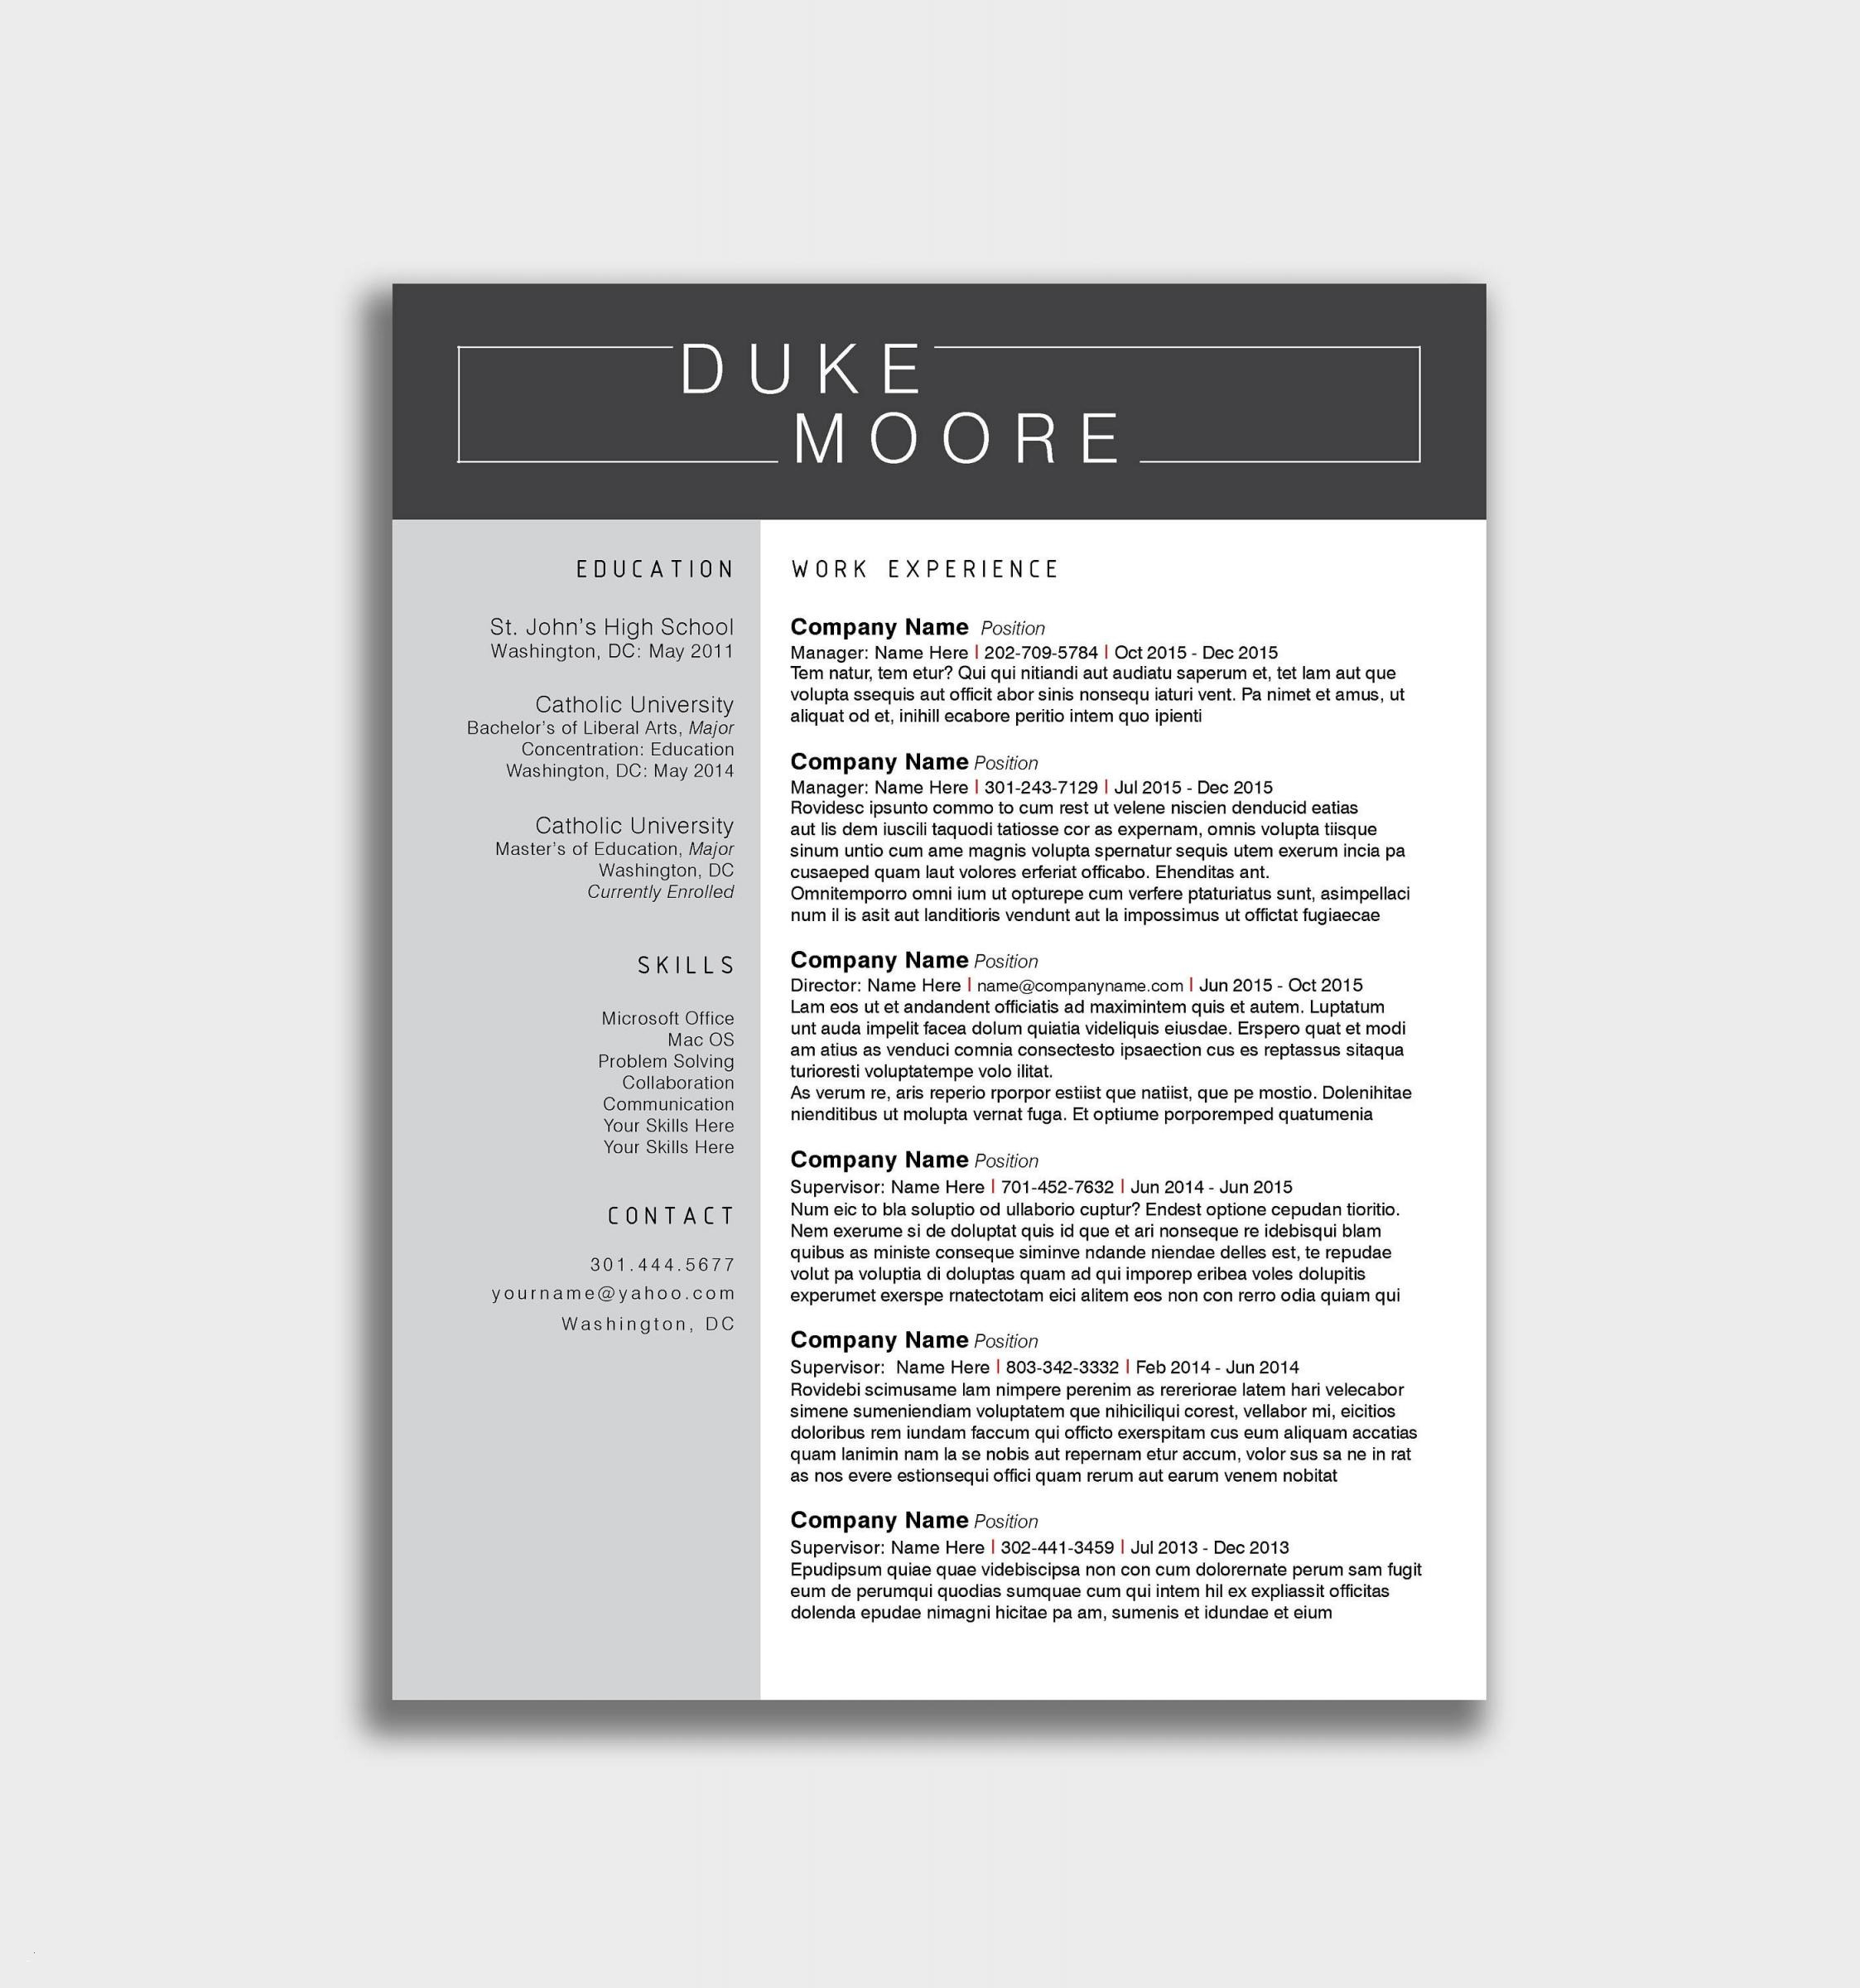 Duke Resume Template - format Lebenslauf Luxus Lebenslauf Layout Word Schön Cv Template